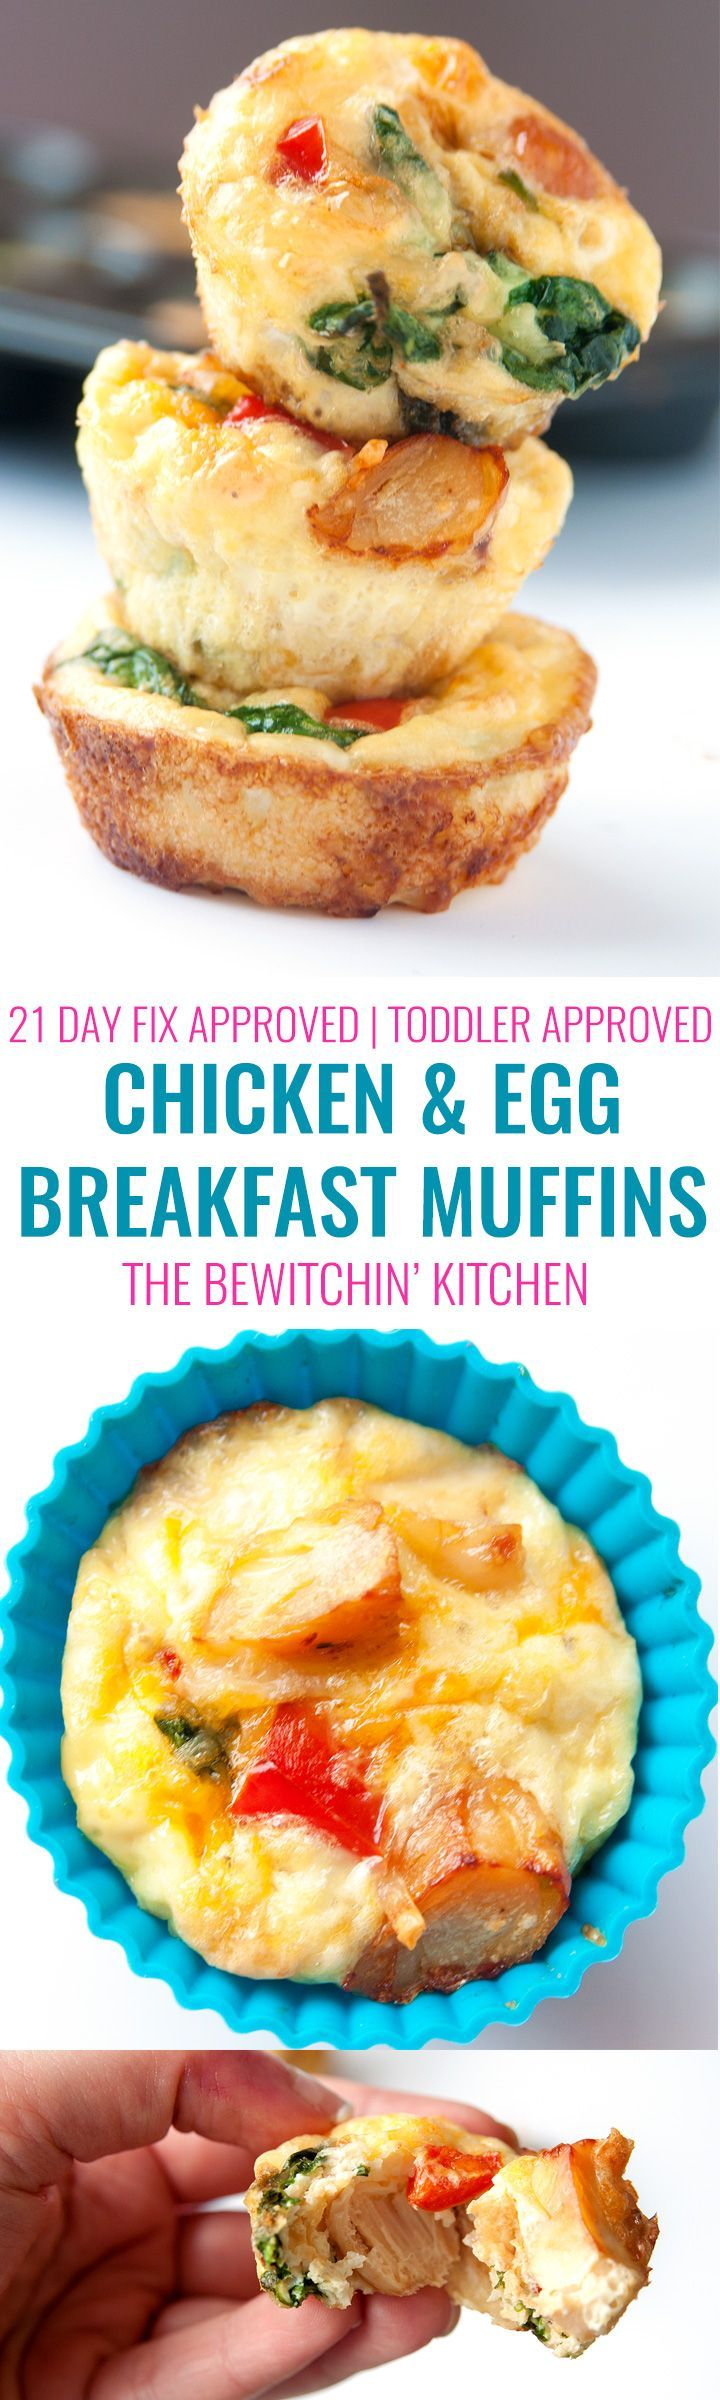 Chicken Breakfast Muffins. These chicken and egg muffins don't have to be just for breakfast. This 21 Day Fix approved recipe is also a delicious healthy snack, nutritious lunch and even works for a clean dinner. This recipe is also approved for 22 Minute